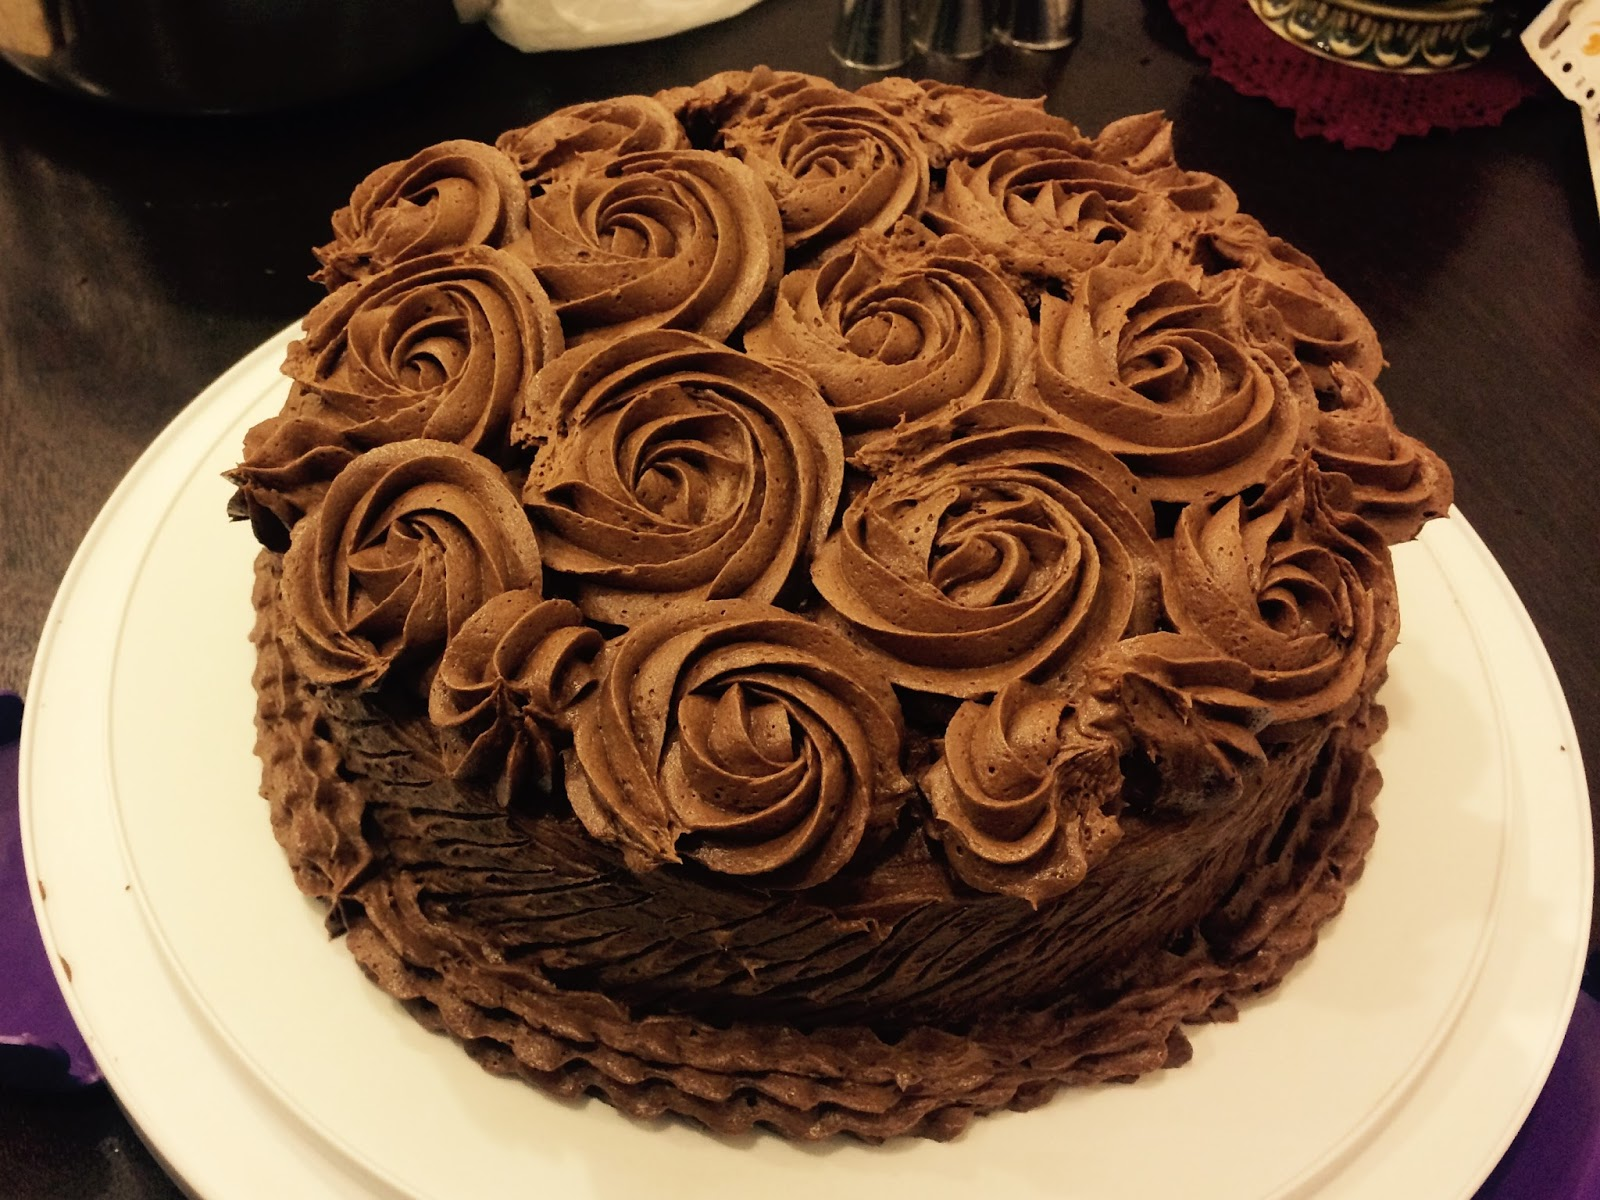 The Best Chocolate Cake Ever - According to Mimi